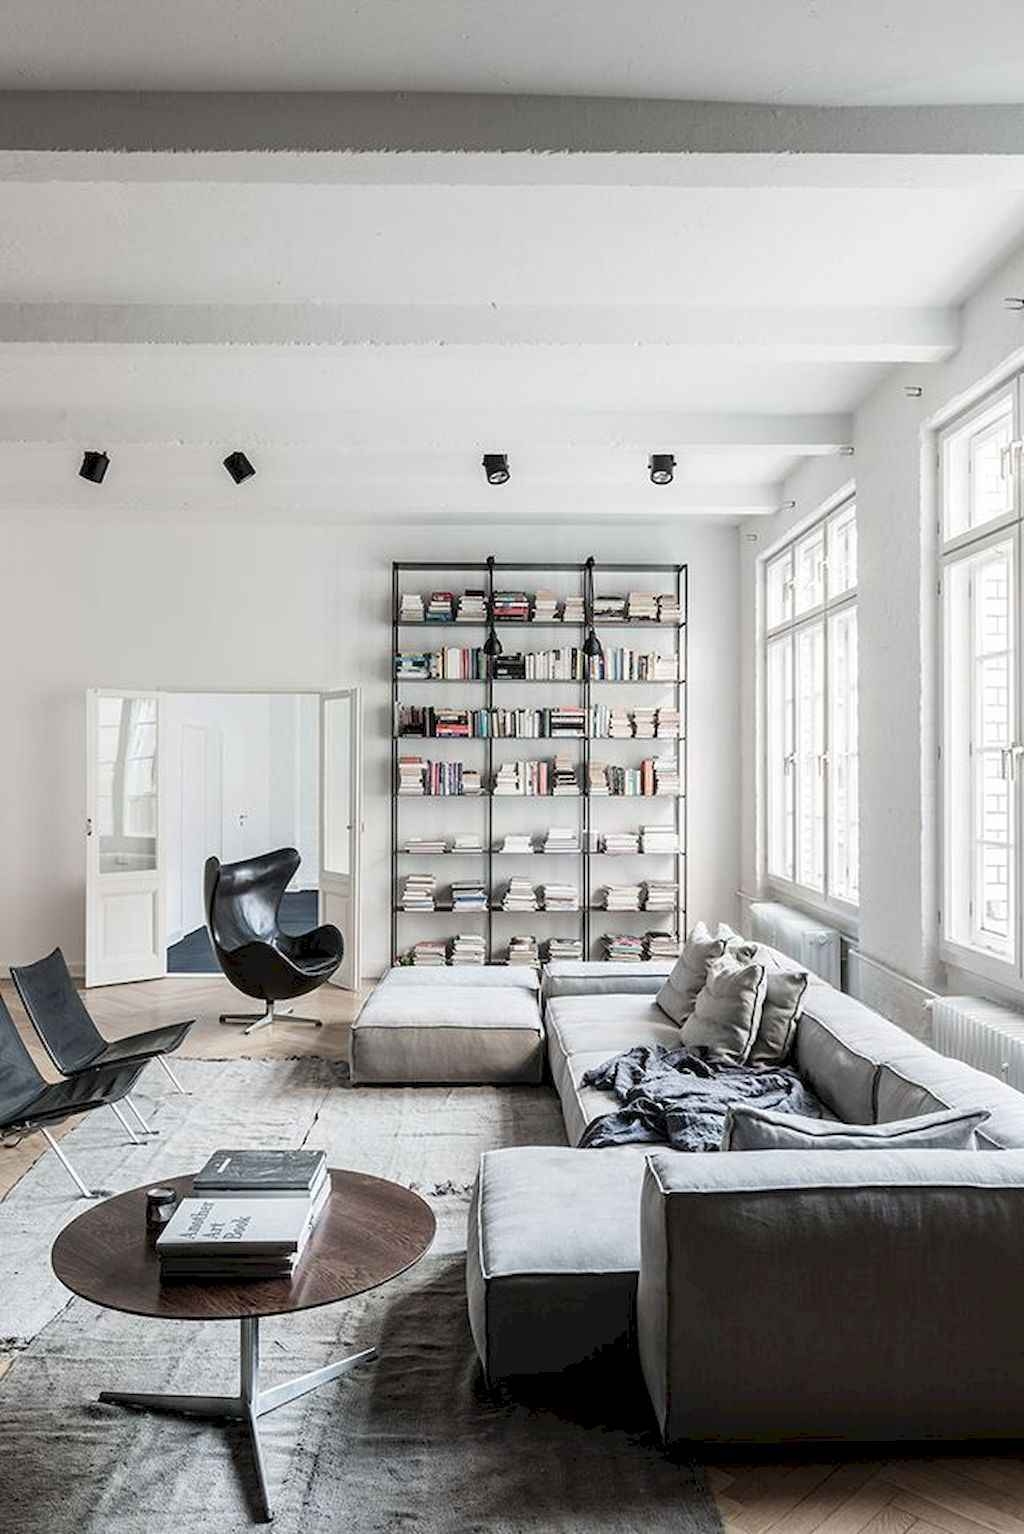 Couples first apartment decorating ideas (60)